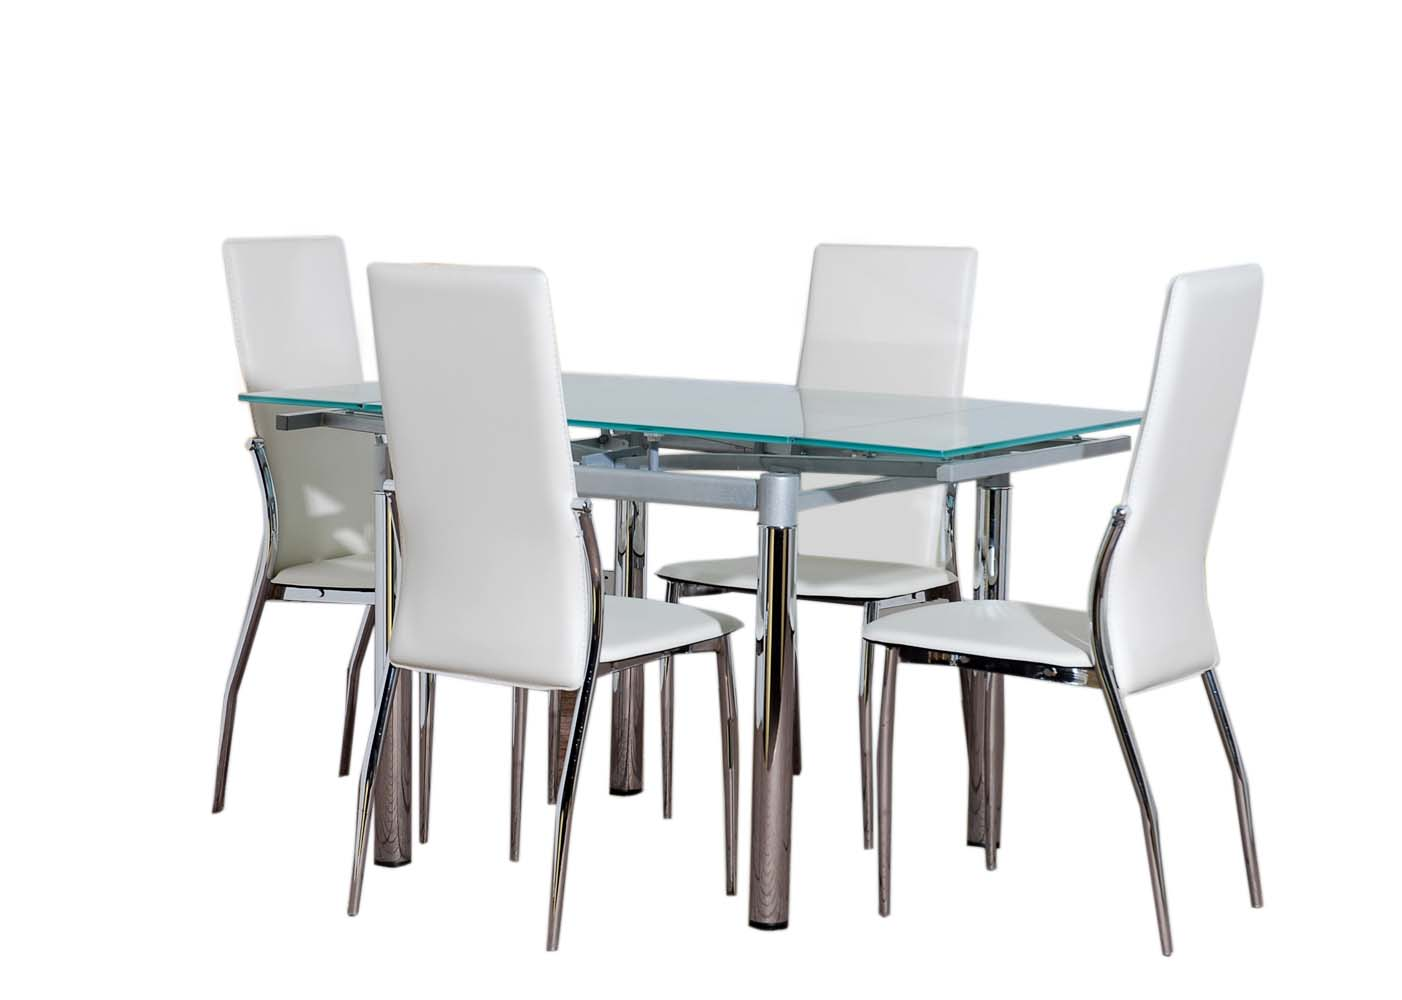 Glass dining table furniture and 4 cream chairs set ebay for Glass dining table set